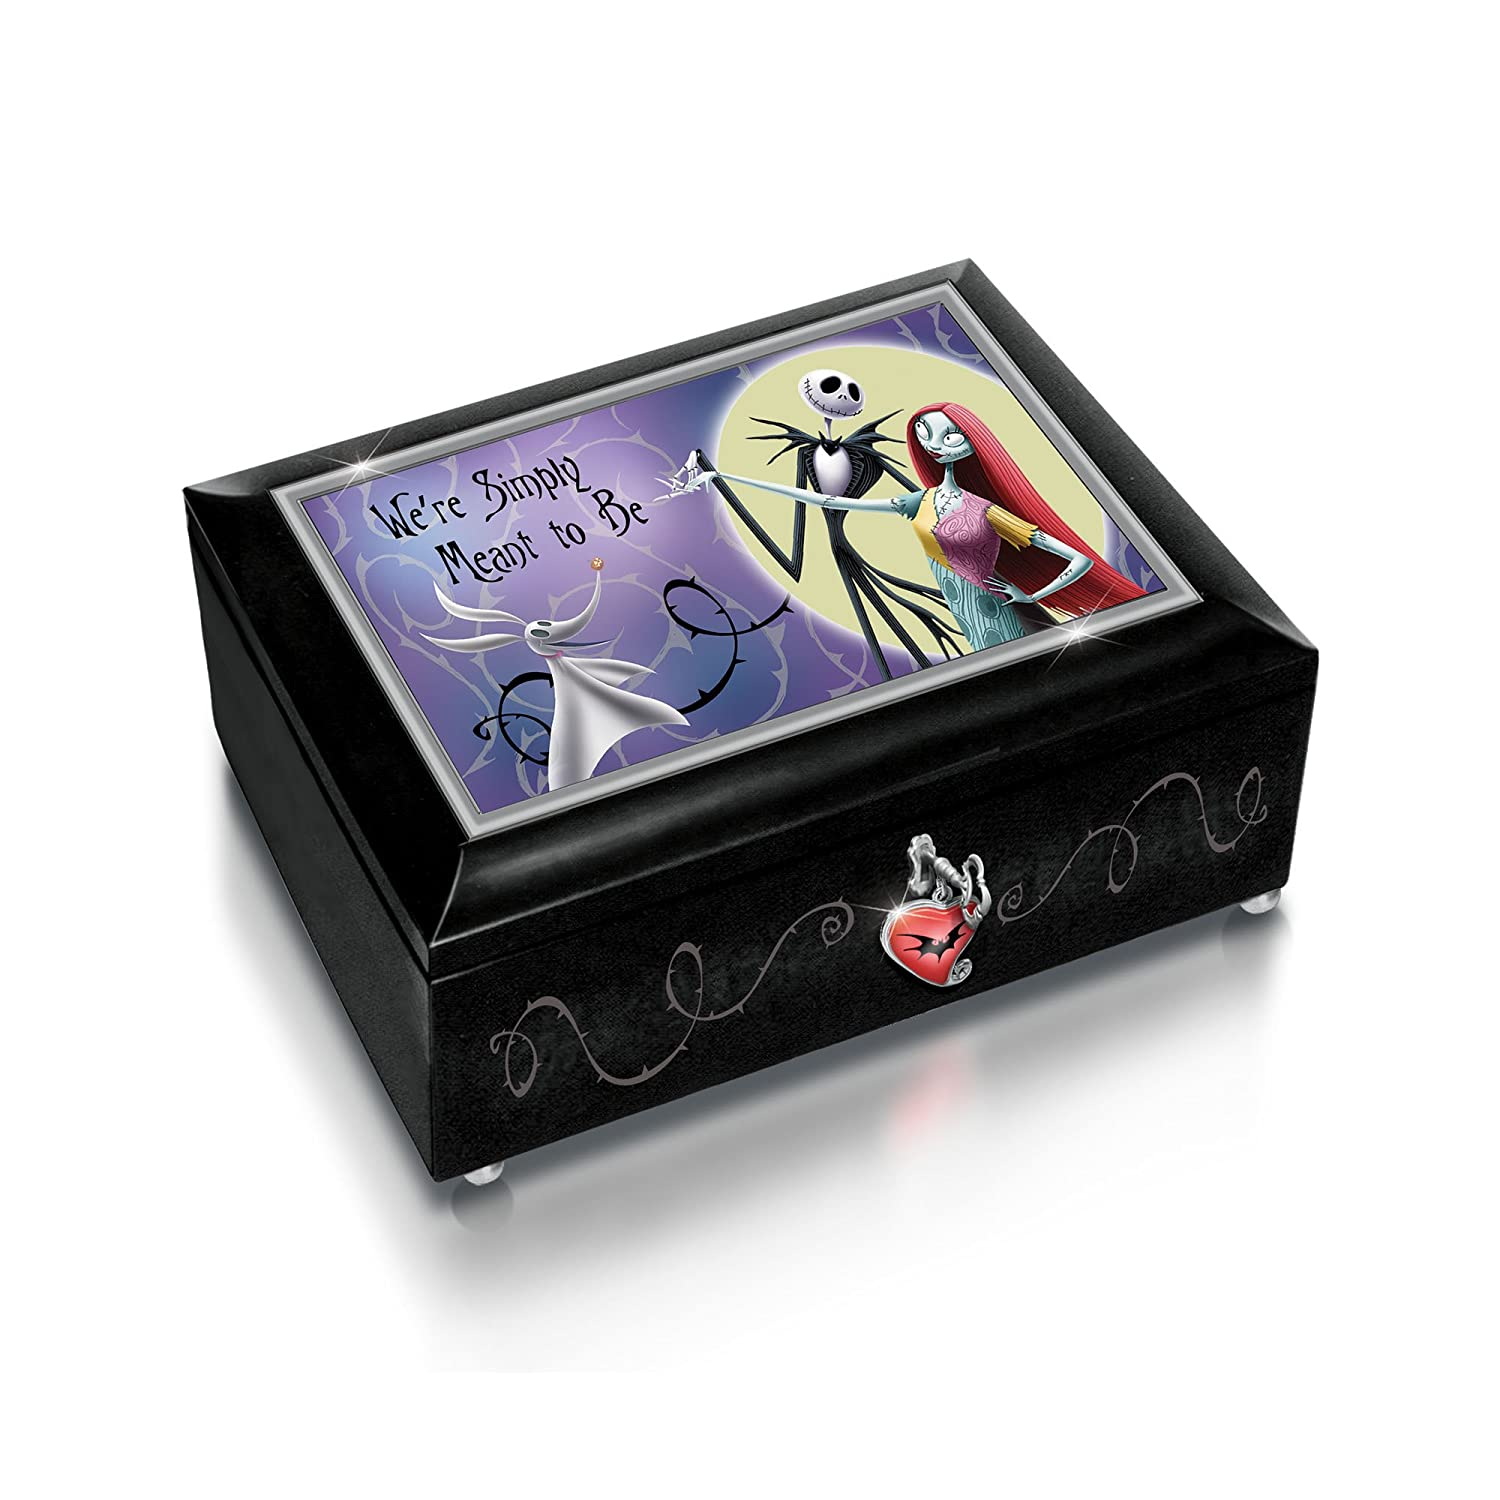 The Bradford Exchange 'The Nightmare Before Christmas' Heirloom Music Box - Illuminated - Glass Lid - Plays 'Overture'